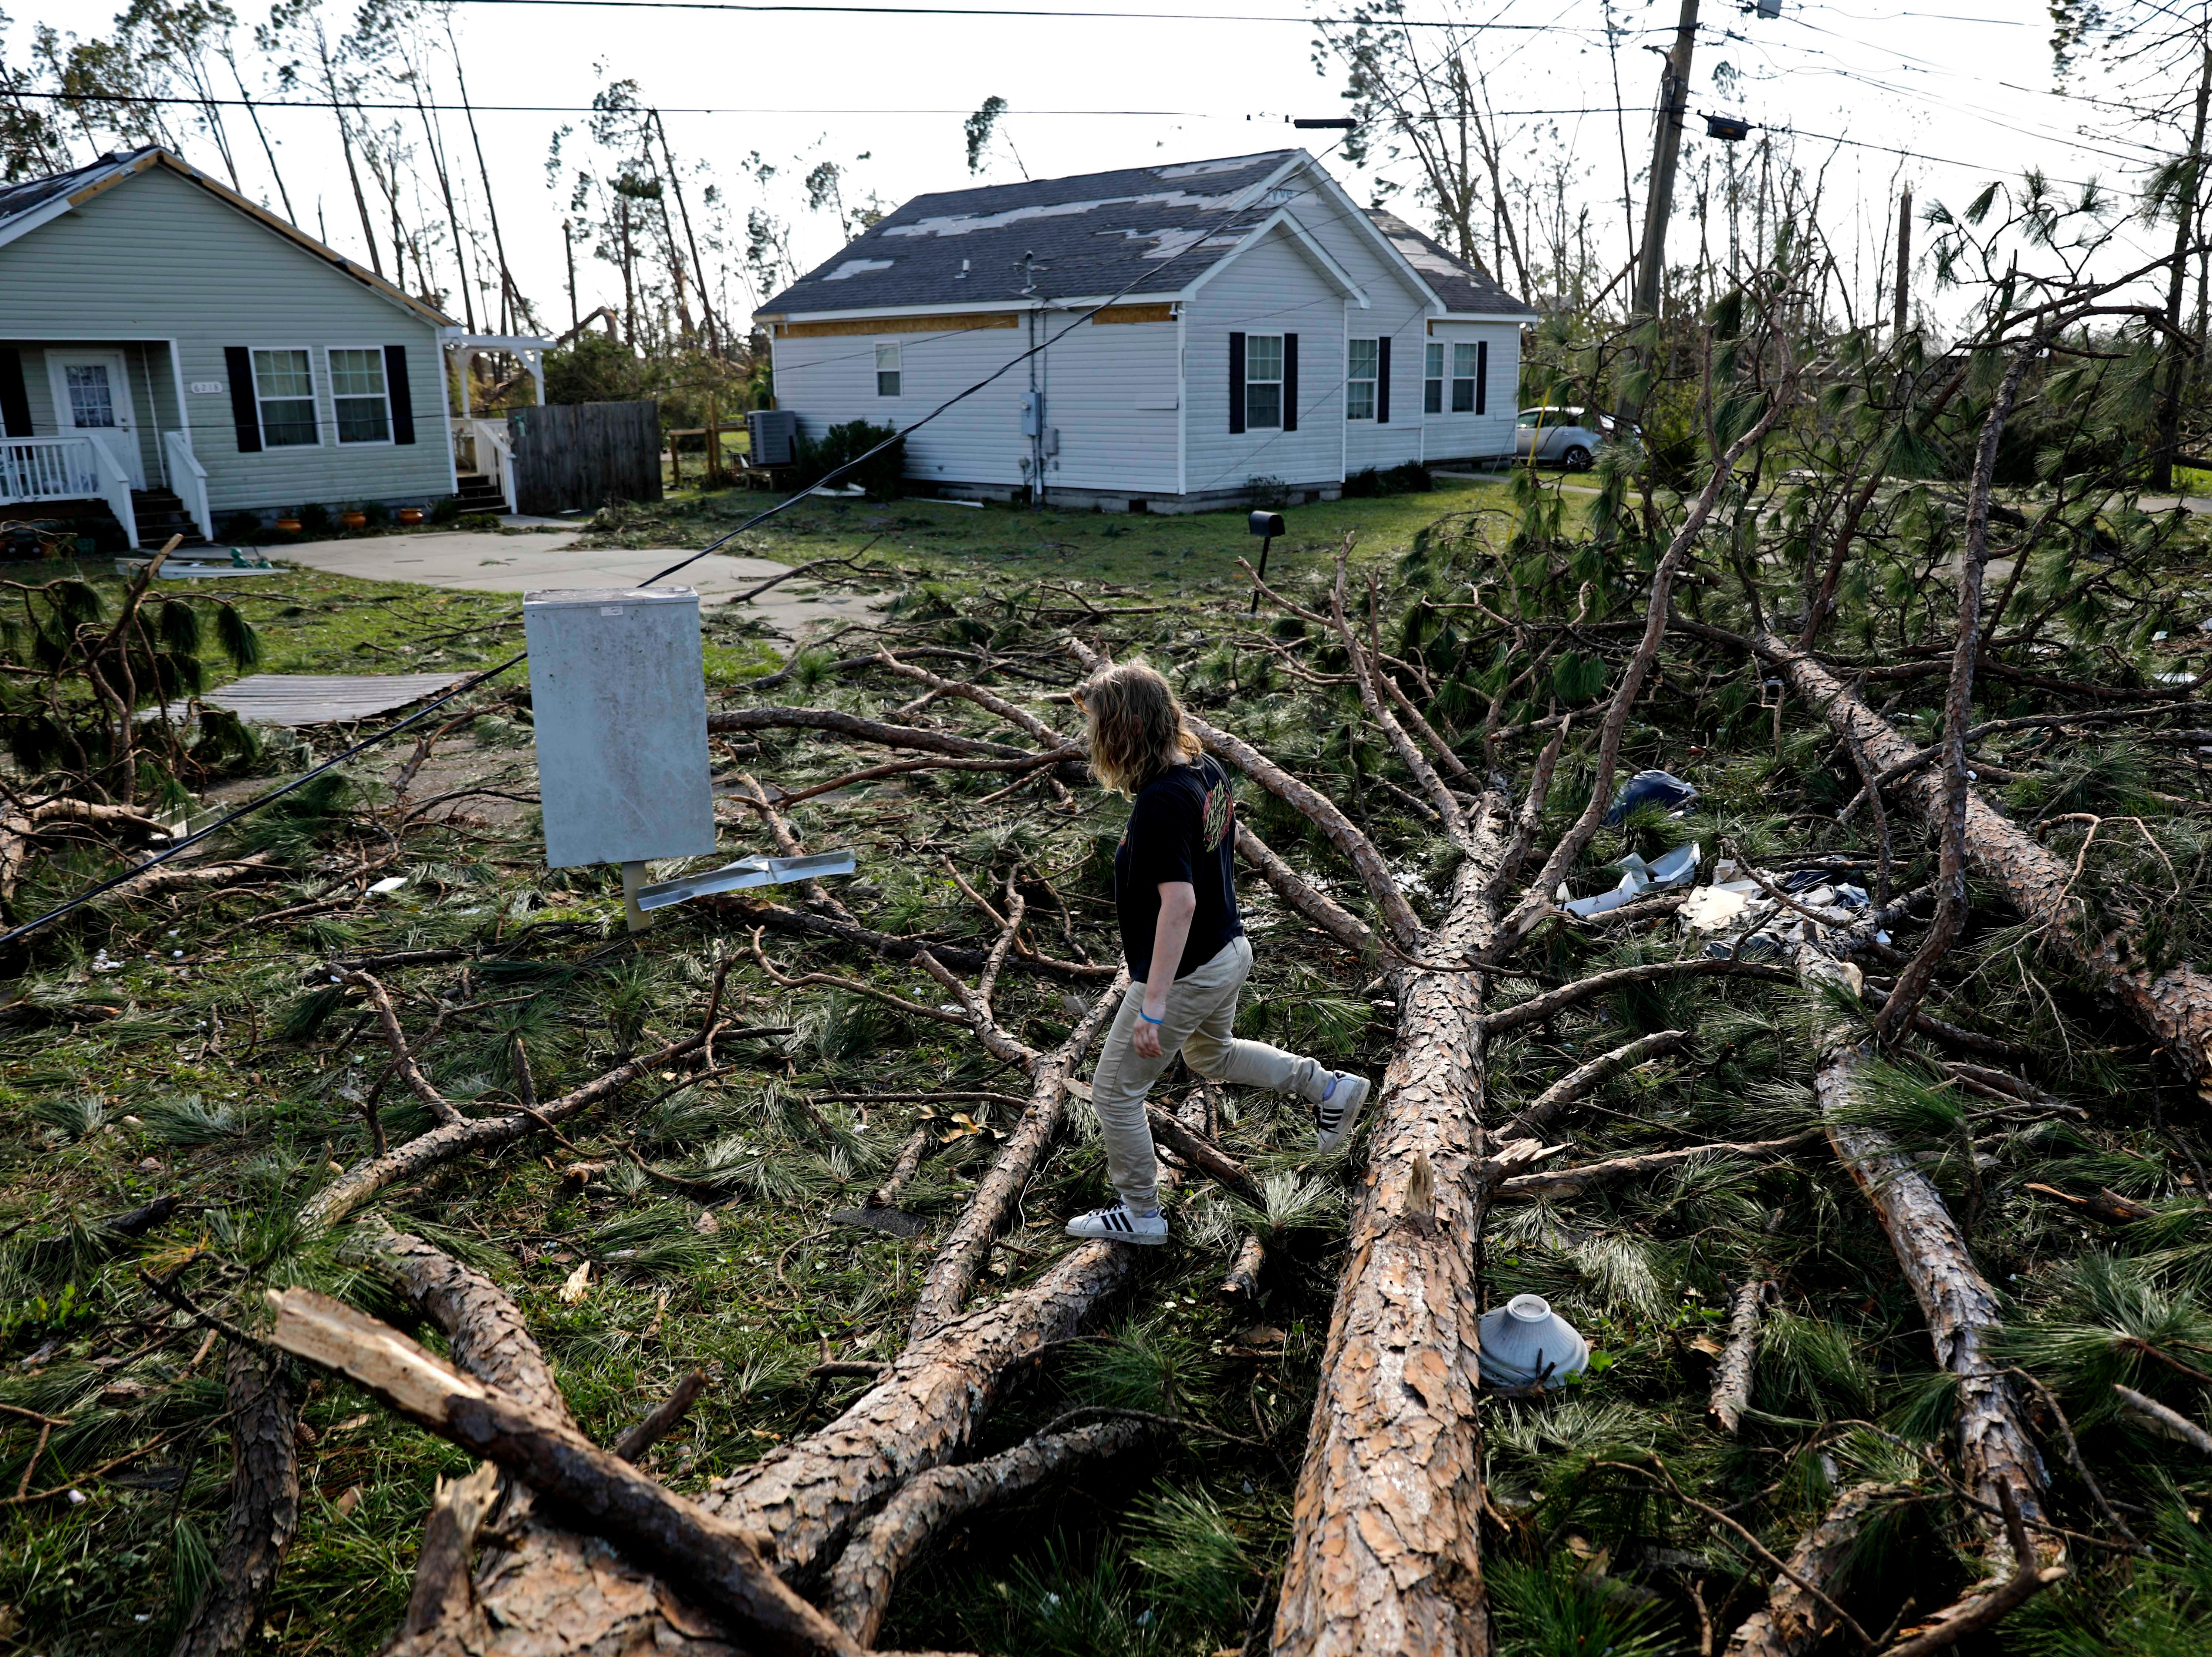 Kelsey Gronbeck walks over fallen trees blocking a street to check on a friend's house in the aftermath of hurricane Michael in Callaway, Fla., Thursday, Oct. 11, 2018.